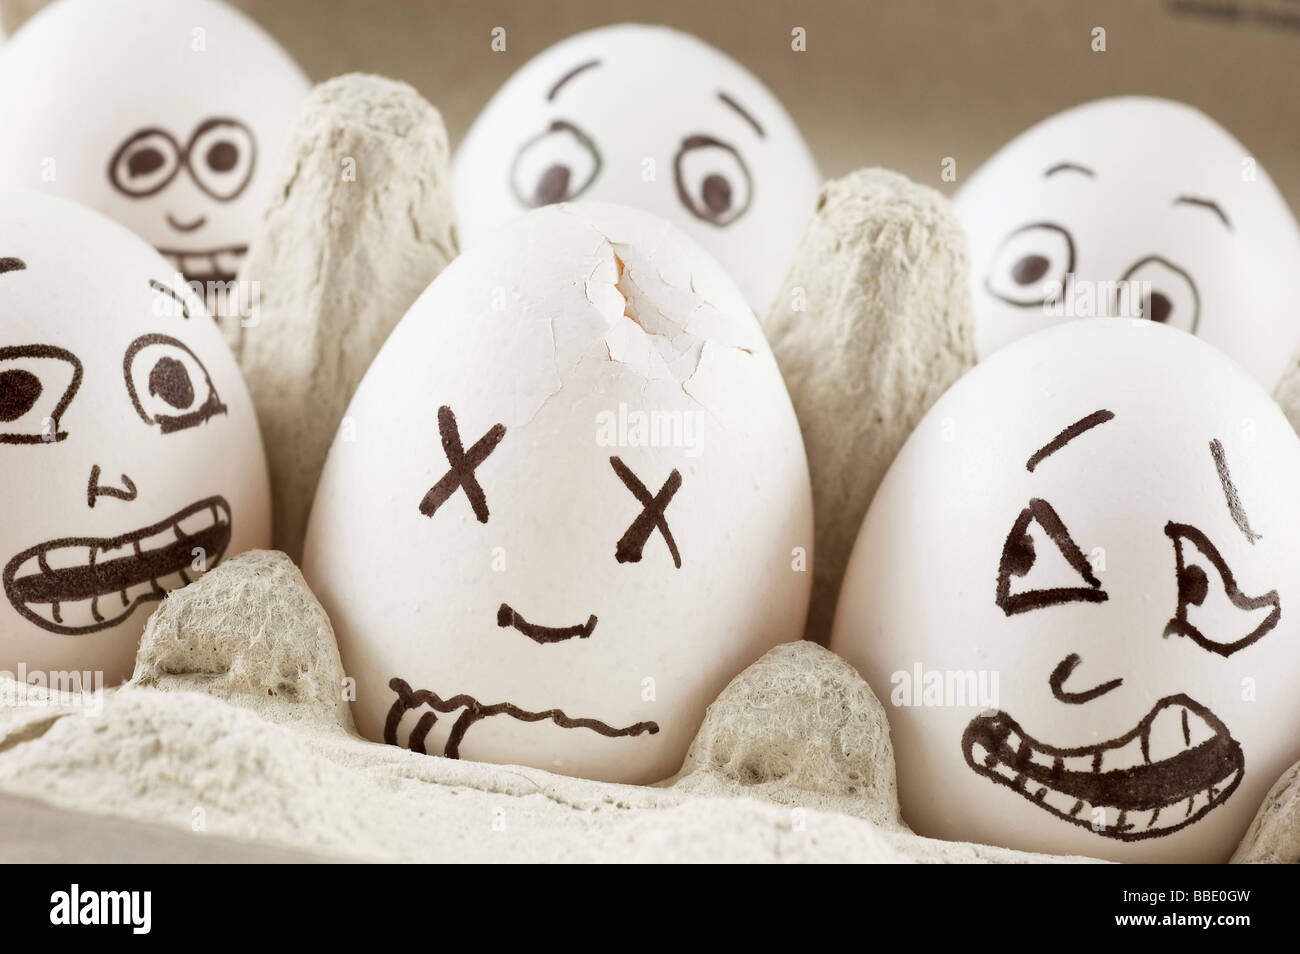 Eggs are scared of their dead friend - Stock Image